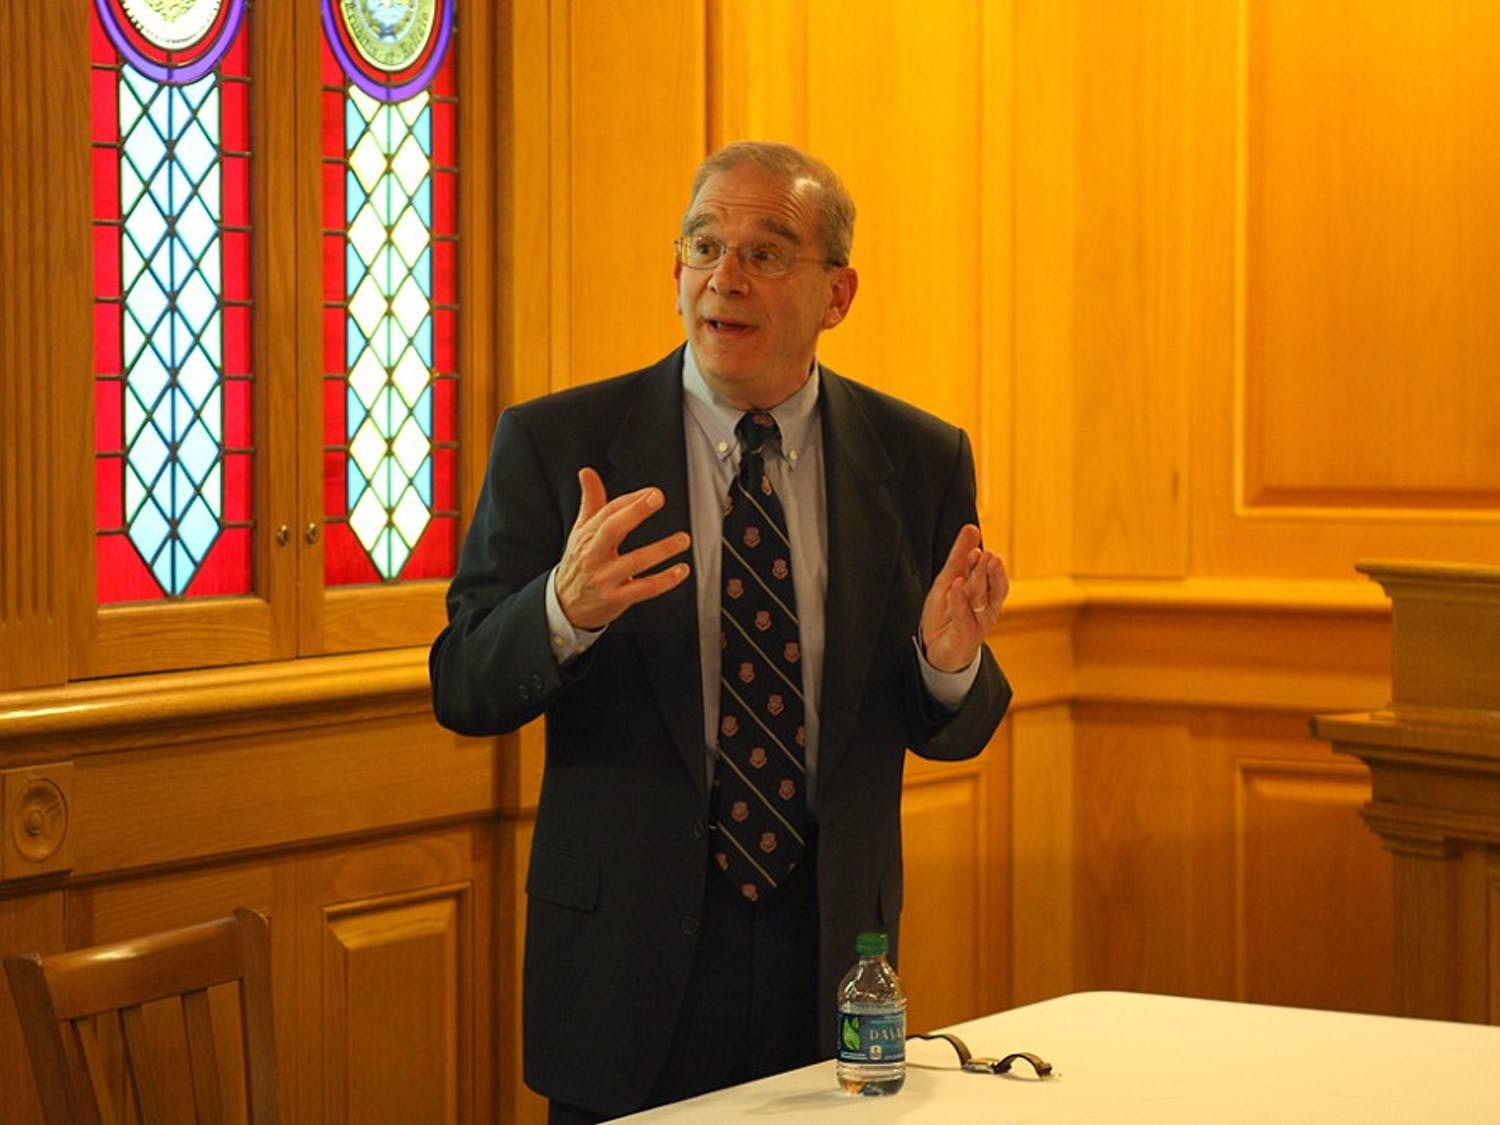 Steven David, vice dean for undergraduate education  and professor at Johns Hopkins University, spoke about the relationship between Israel and Iran in the Old Trinity Room Tuesday.